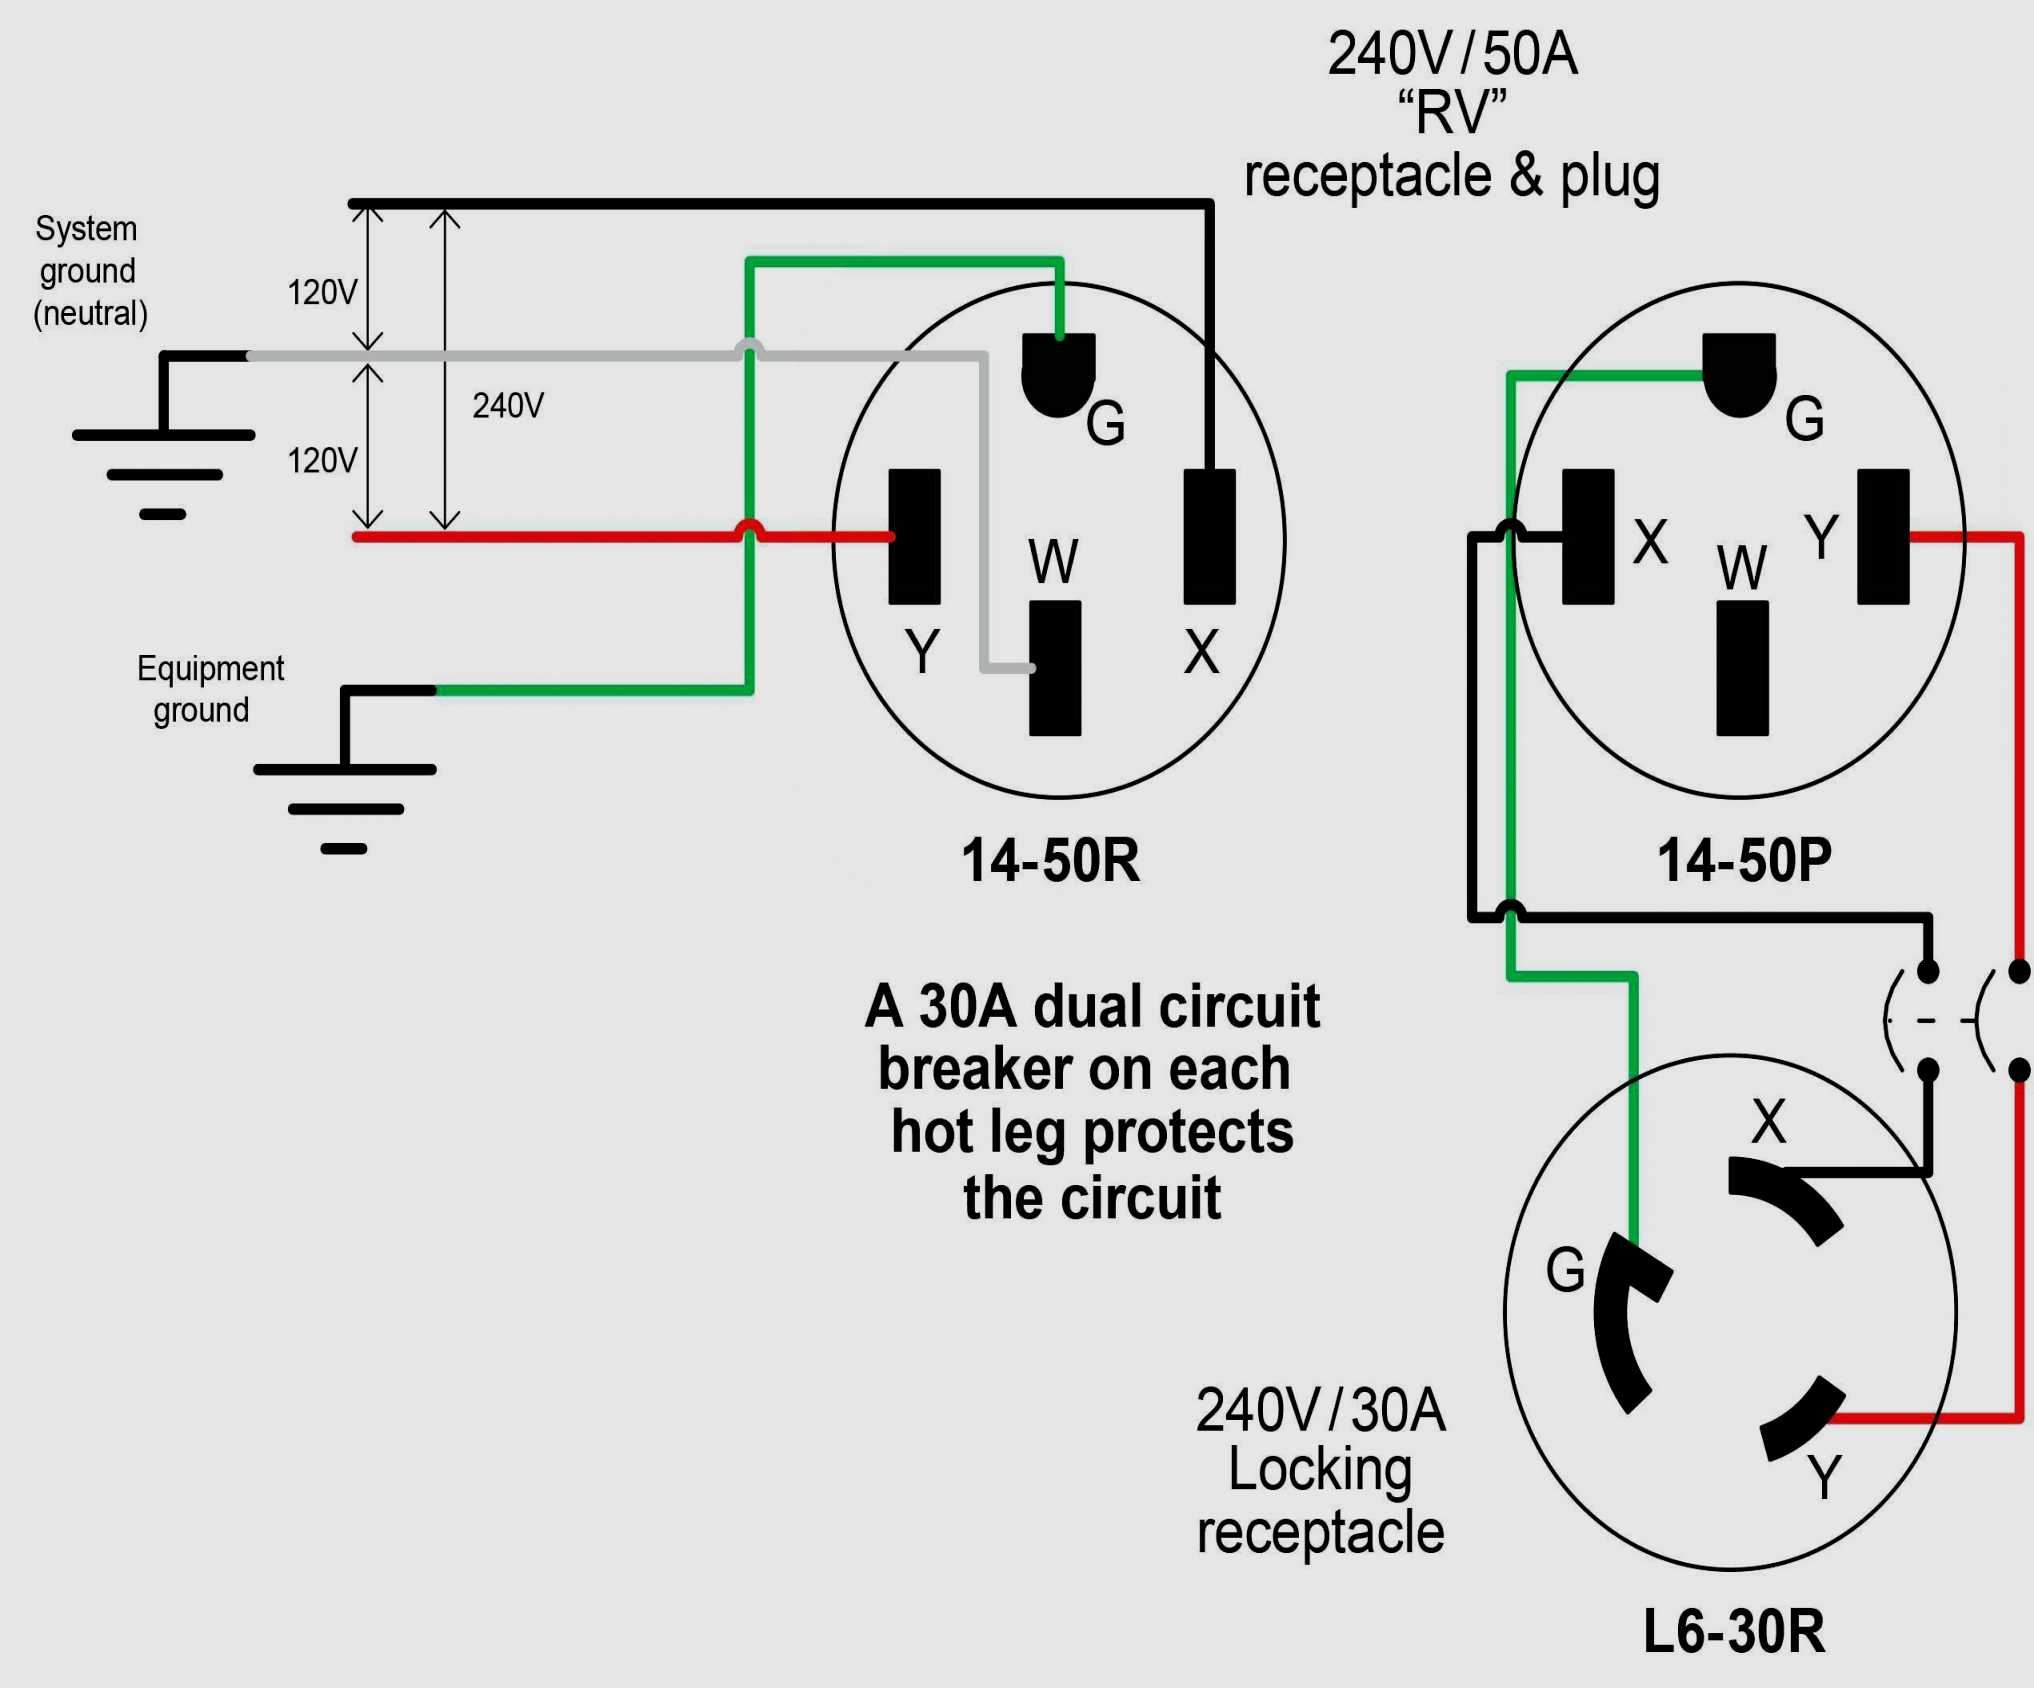 480V To 240V Transformer Wiring Diagram | Wiring Diagram